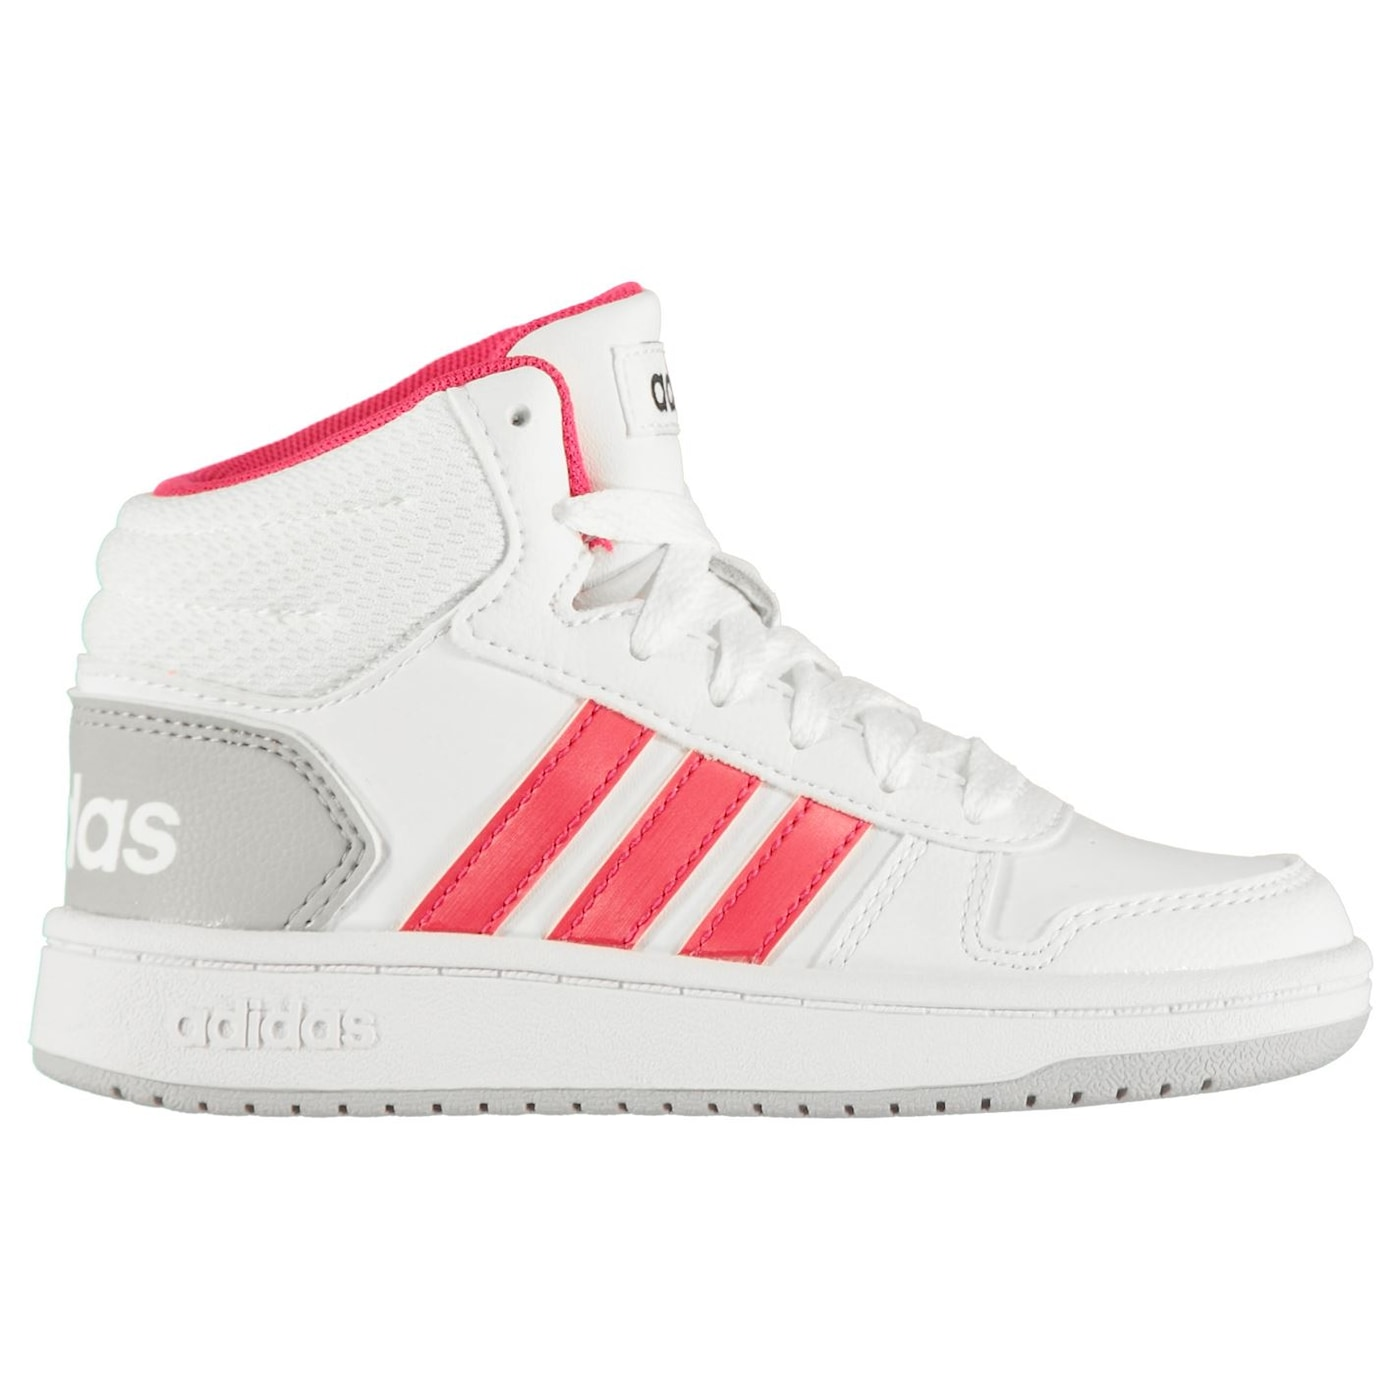 Adidas Hoops Mid 2 Child Girls Trainers